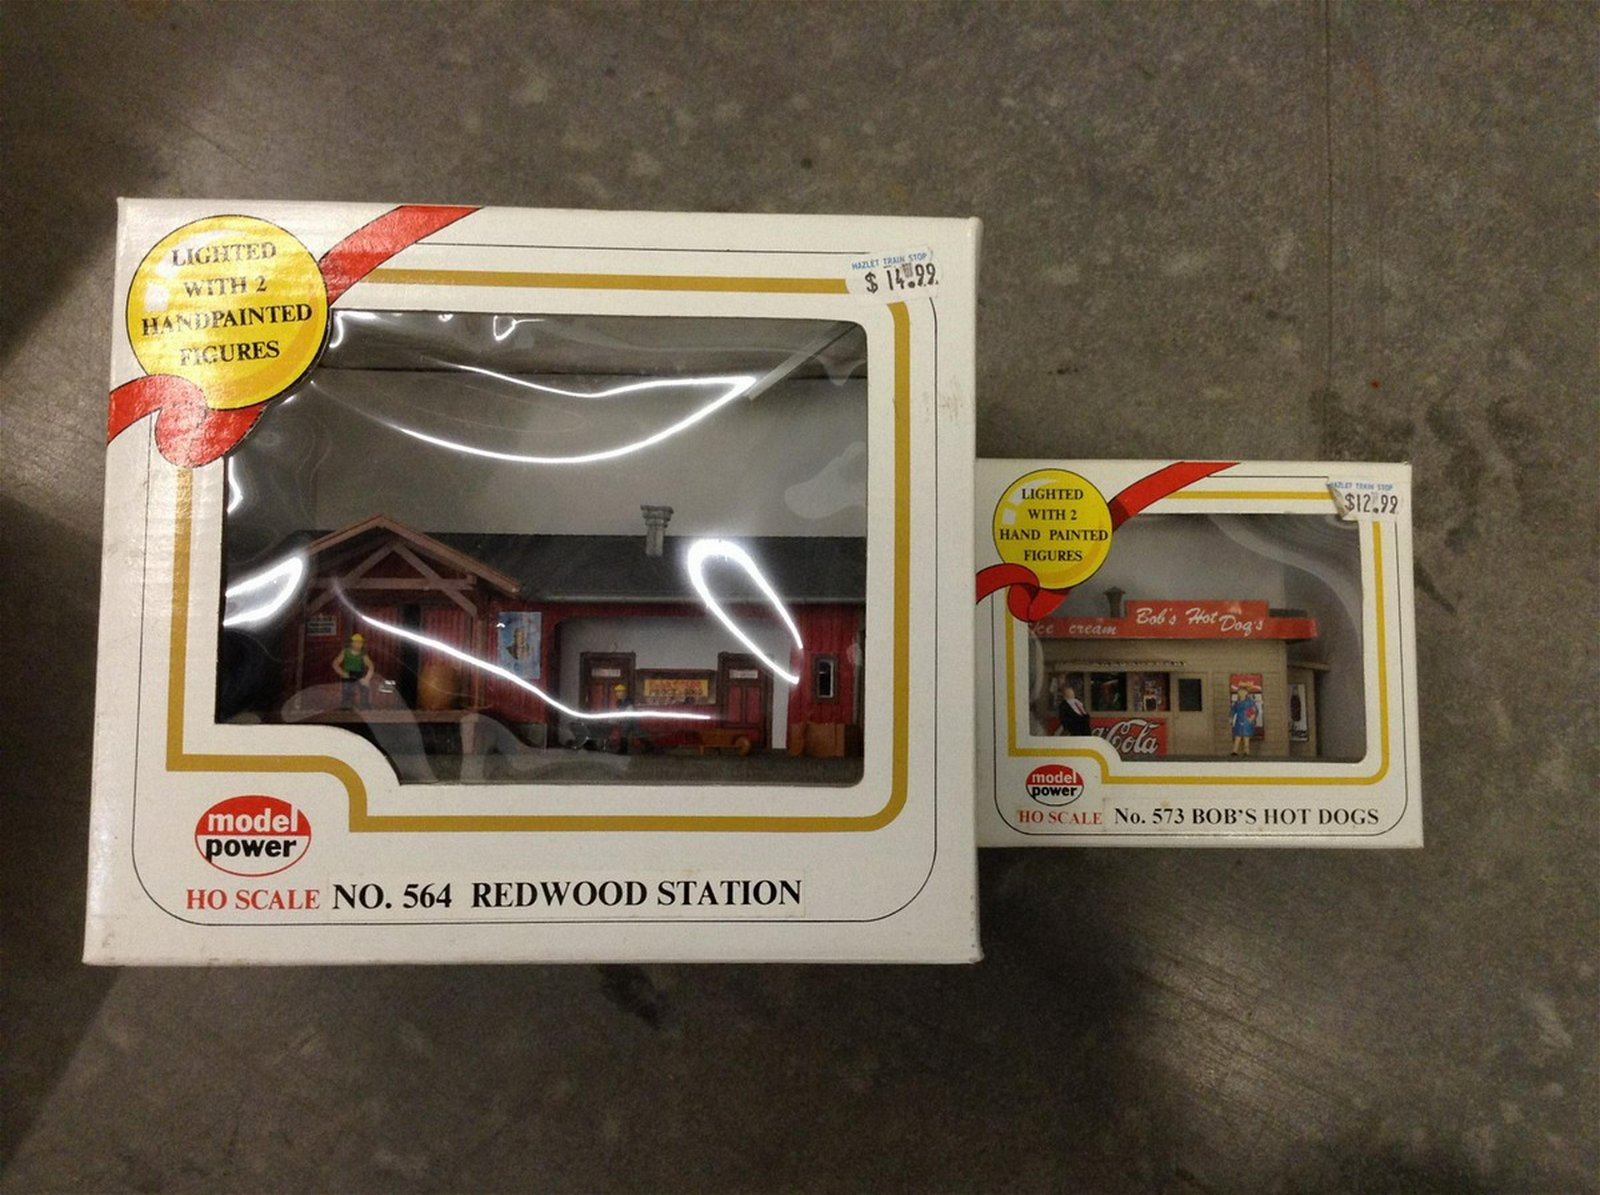 lot of two Model power HO scale train accessories new i